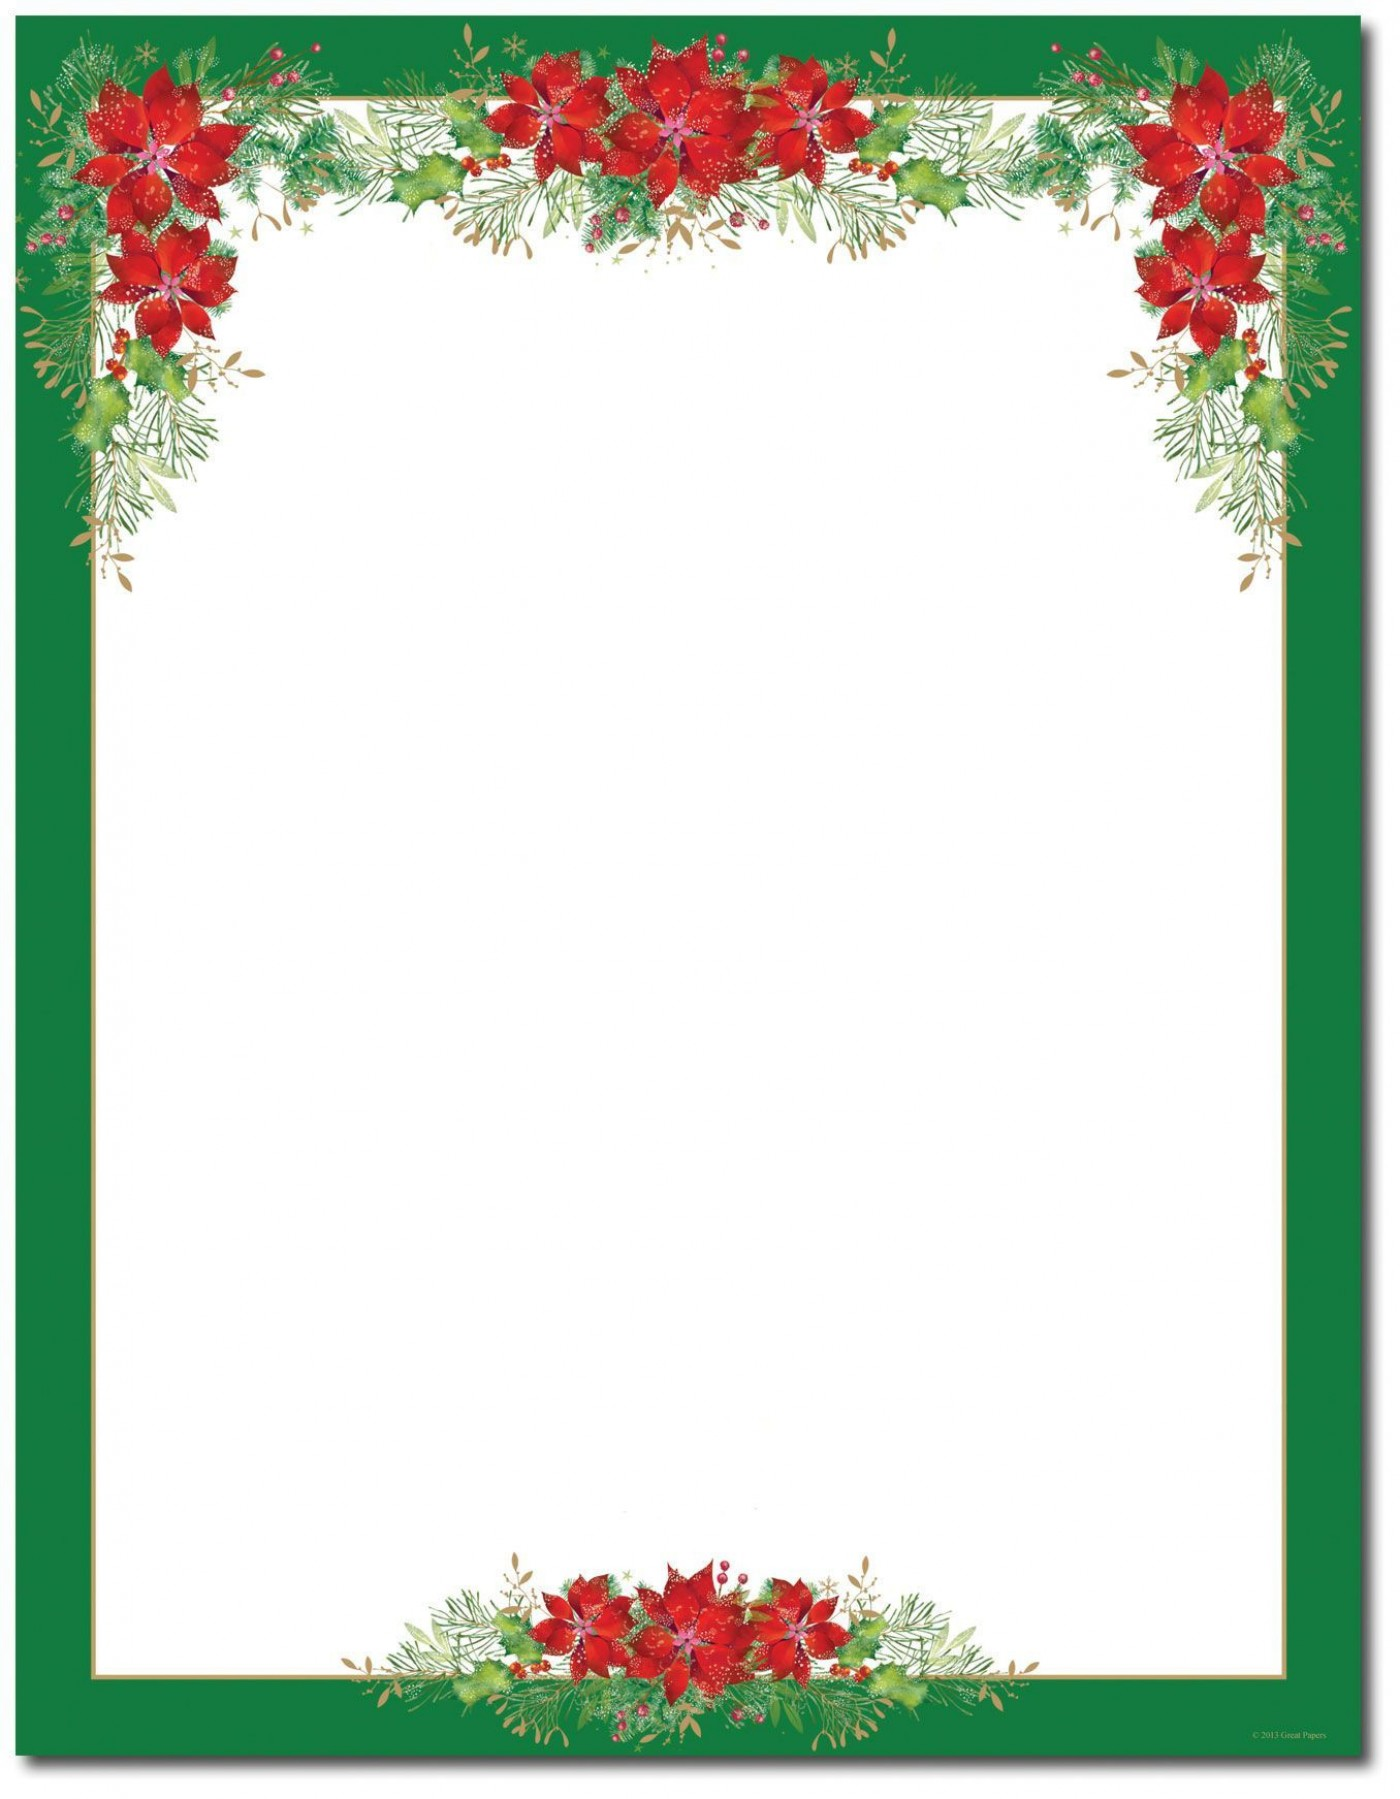 007 Wondrou Free Holiday Stationery Template For Word Image 1400